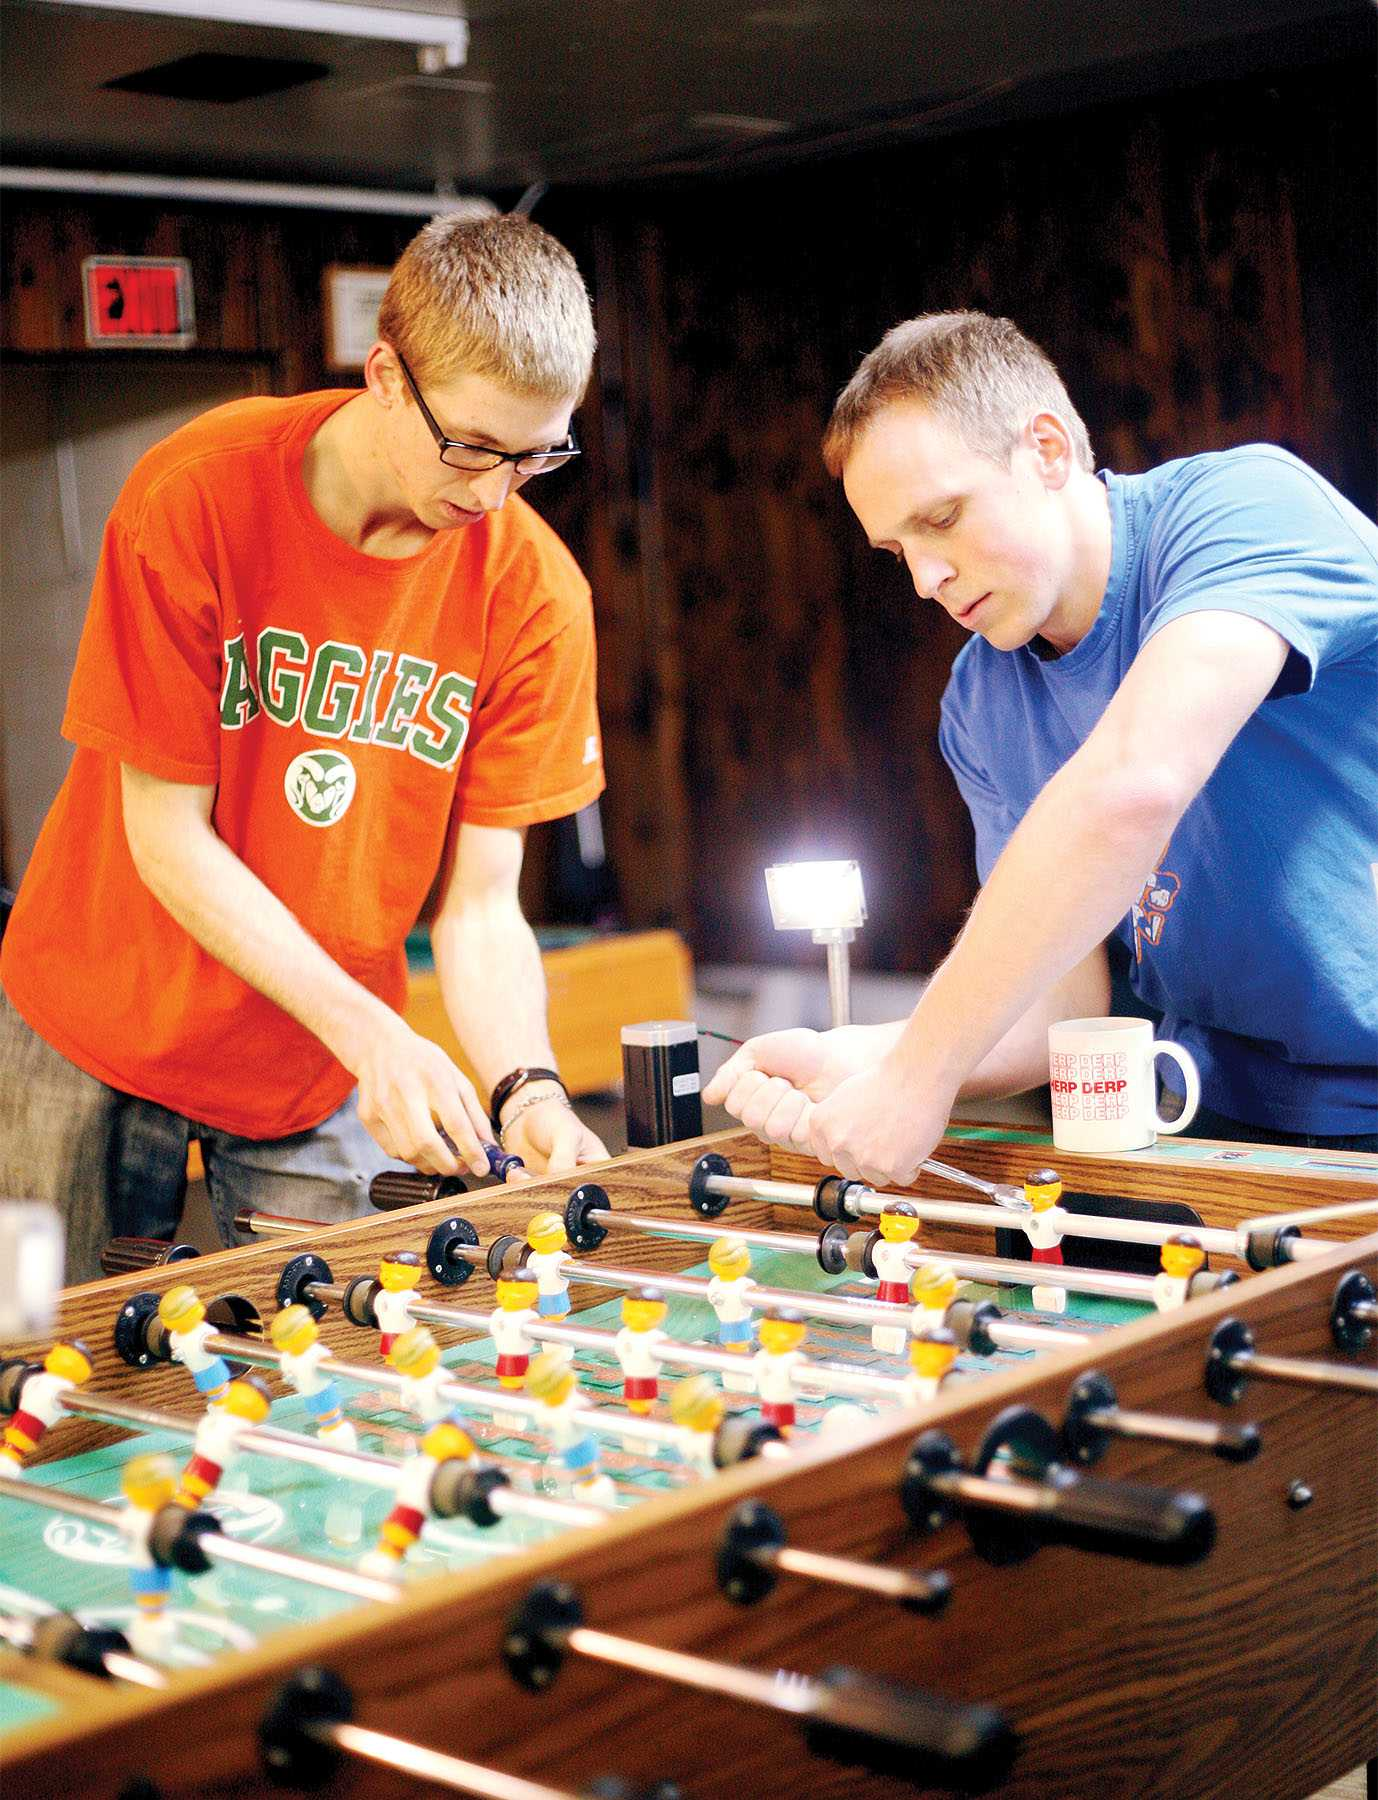 Mechanical Engineering students Darryl Beemer, left, and Kevin Westhoff, right, make adjustments to their Mechatronics final project, a foosball table with a capacitive grid that automatically moves the goalie, Friday afternoon. The College of Engineering has grown by 25% over the last decade, which is the largest growth of any college at CSU.